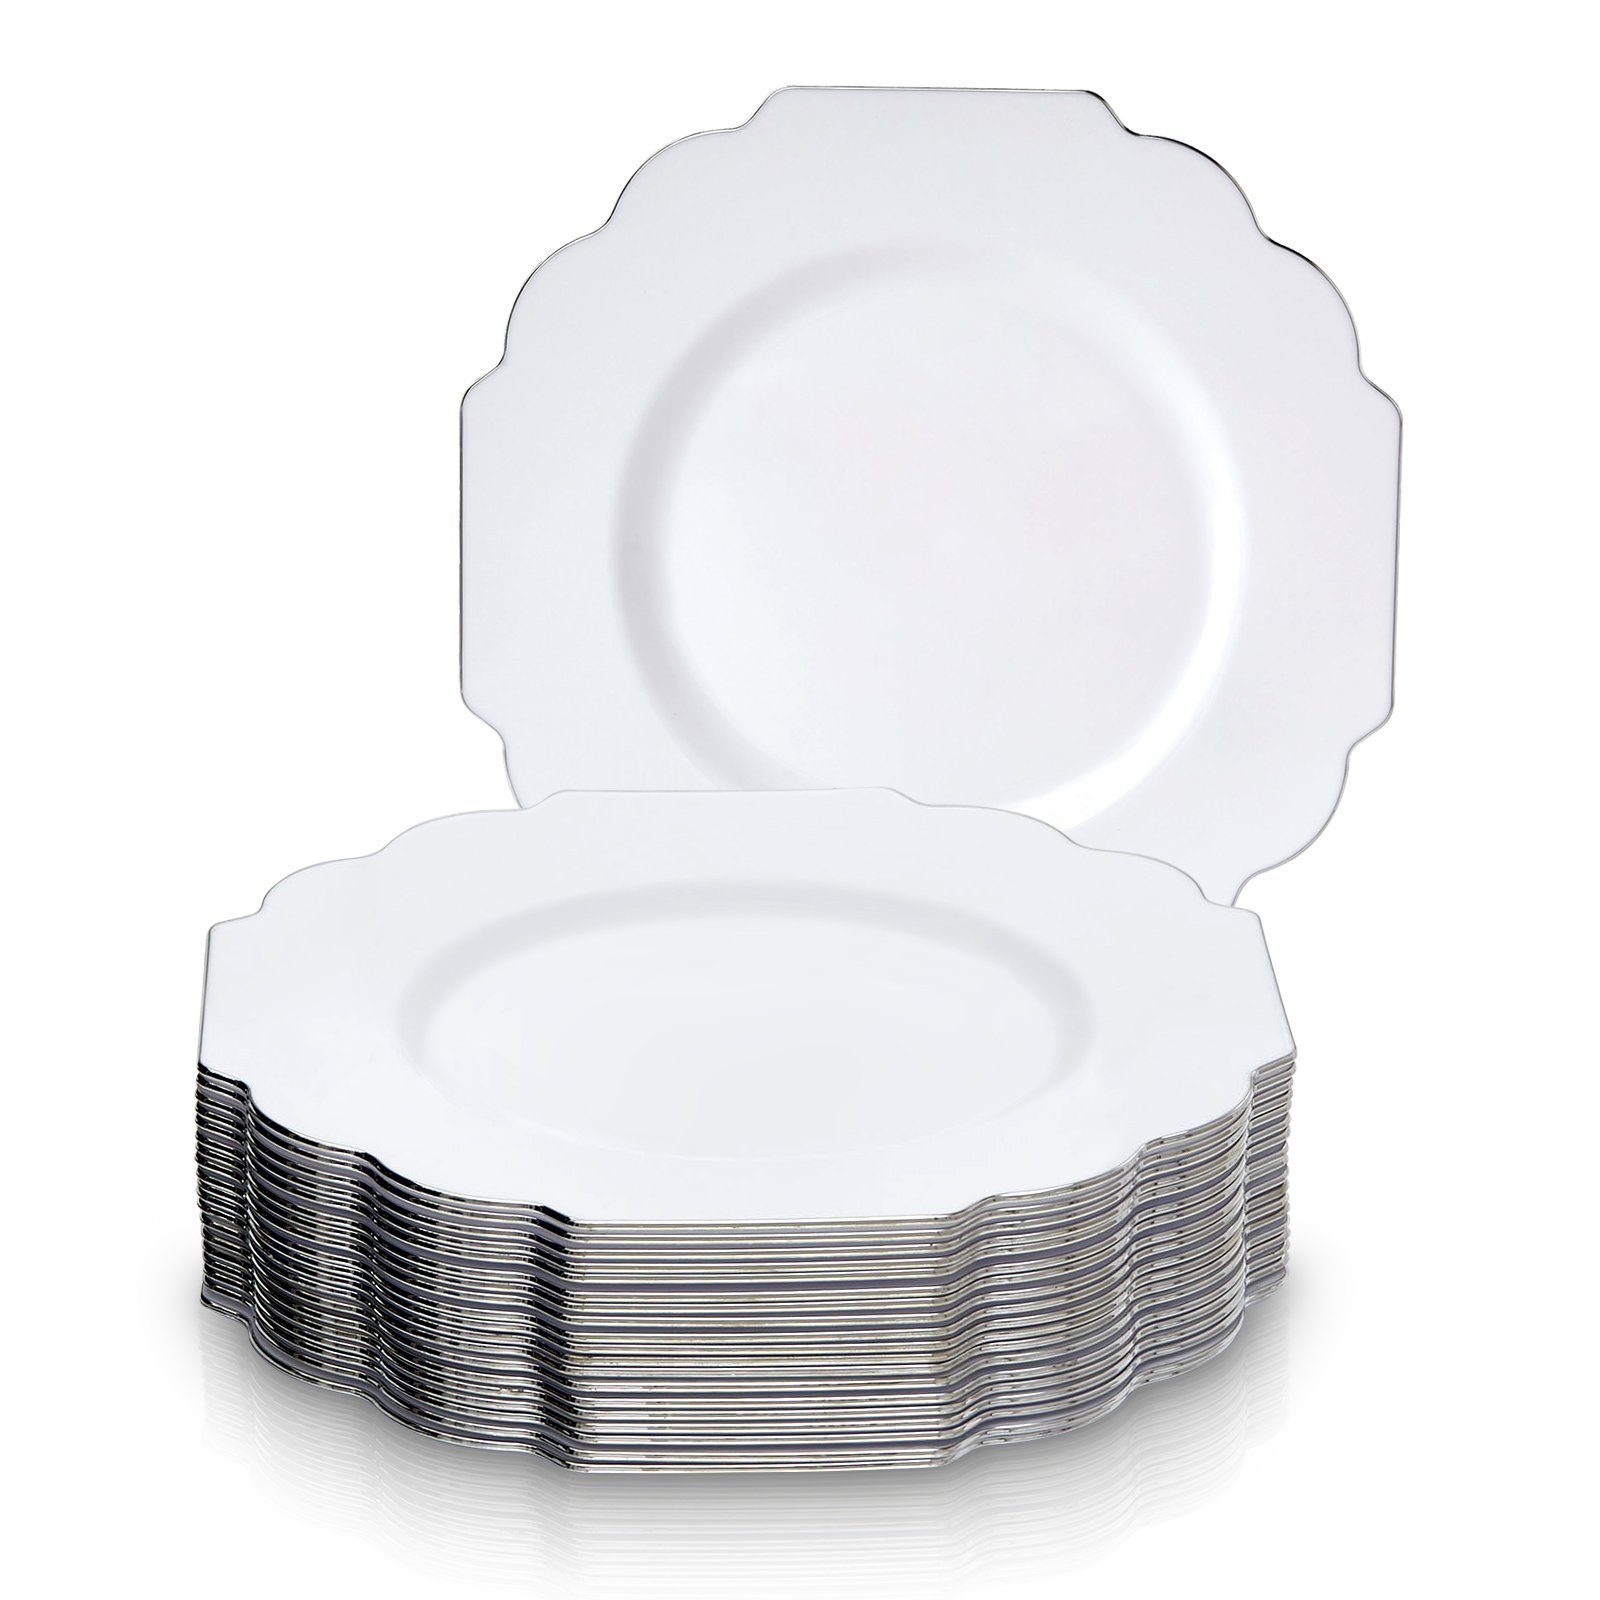 PARTY DISPOSABLE 20 PC DINNERWARE SET | Heavyweight Plastic Dishes | 20 Salad/Dessert plates | Elegant Fine China Look | for Upscale Wedding and Dining (Baroque Collection– Silver Edge/White | 8.5 in)